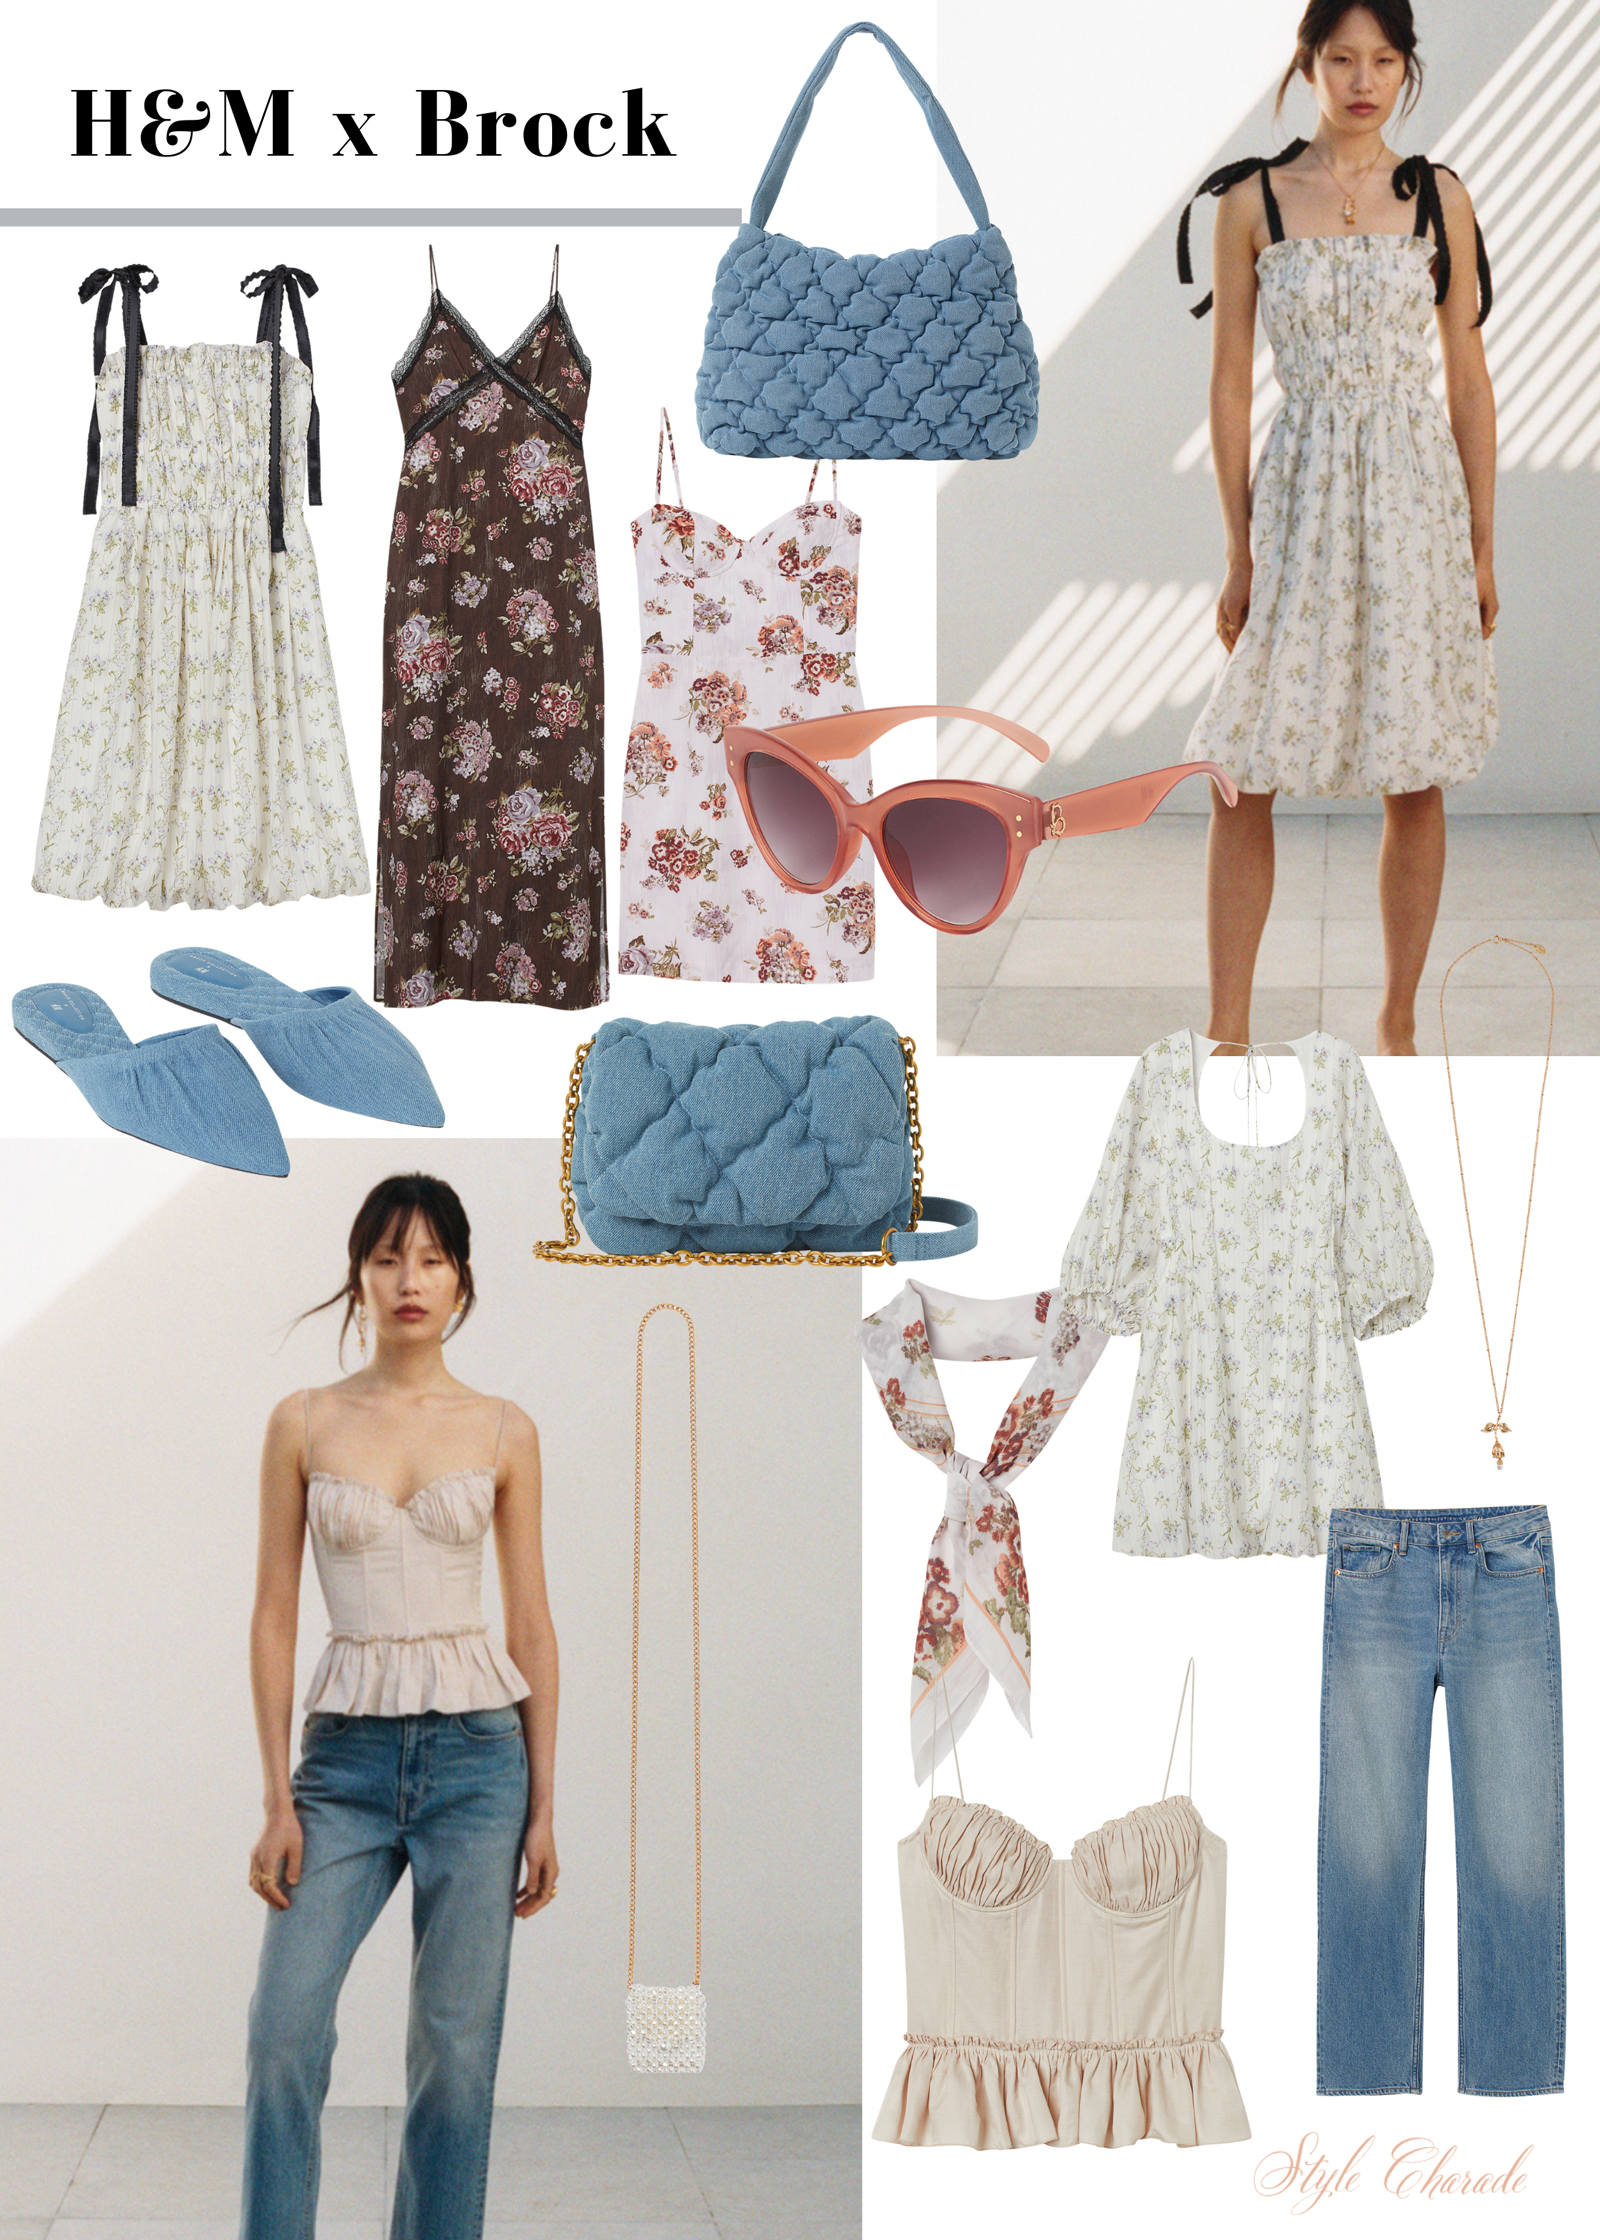 H&M Brock Collection